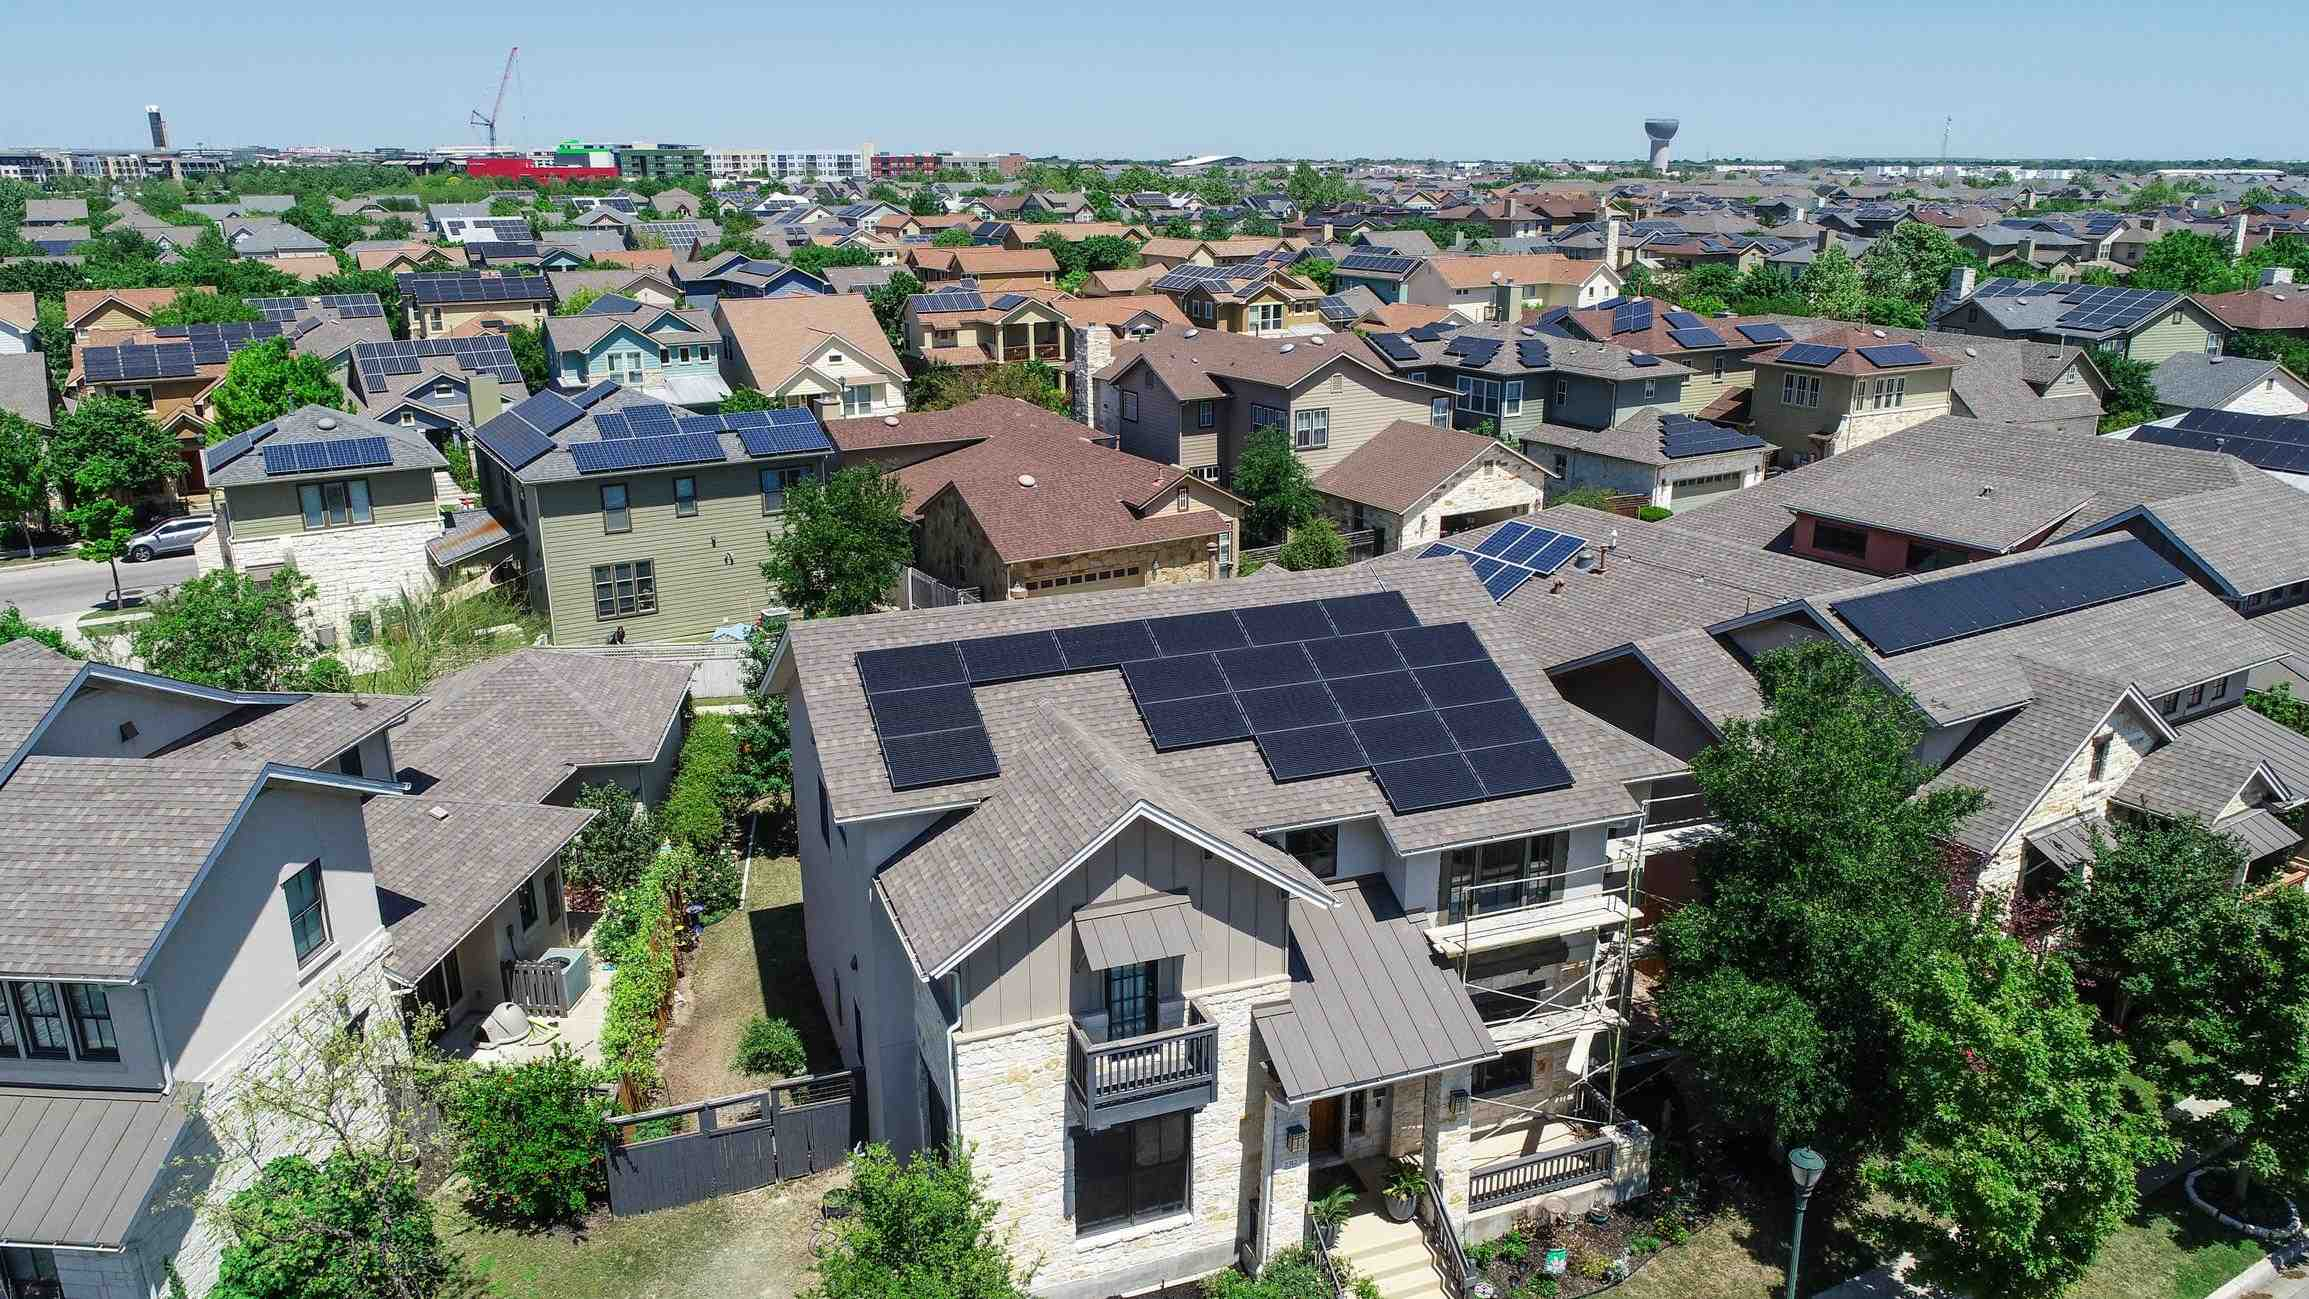 Is the government giving away free solar panels?